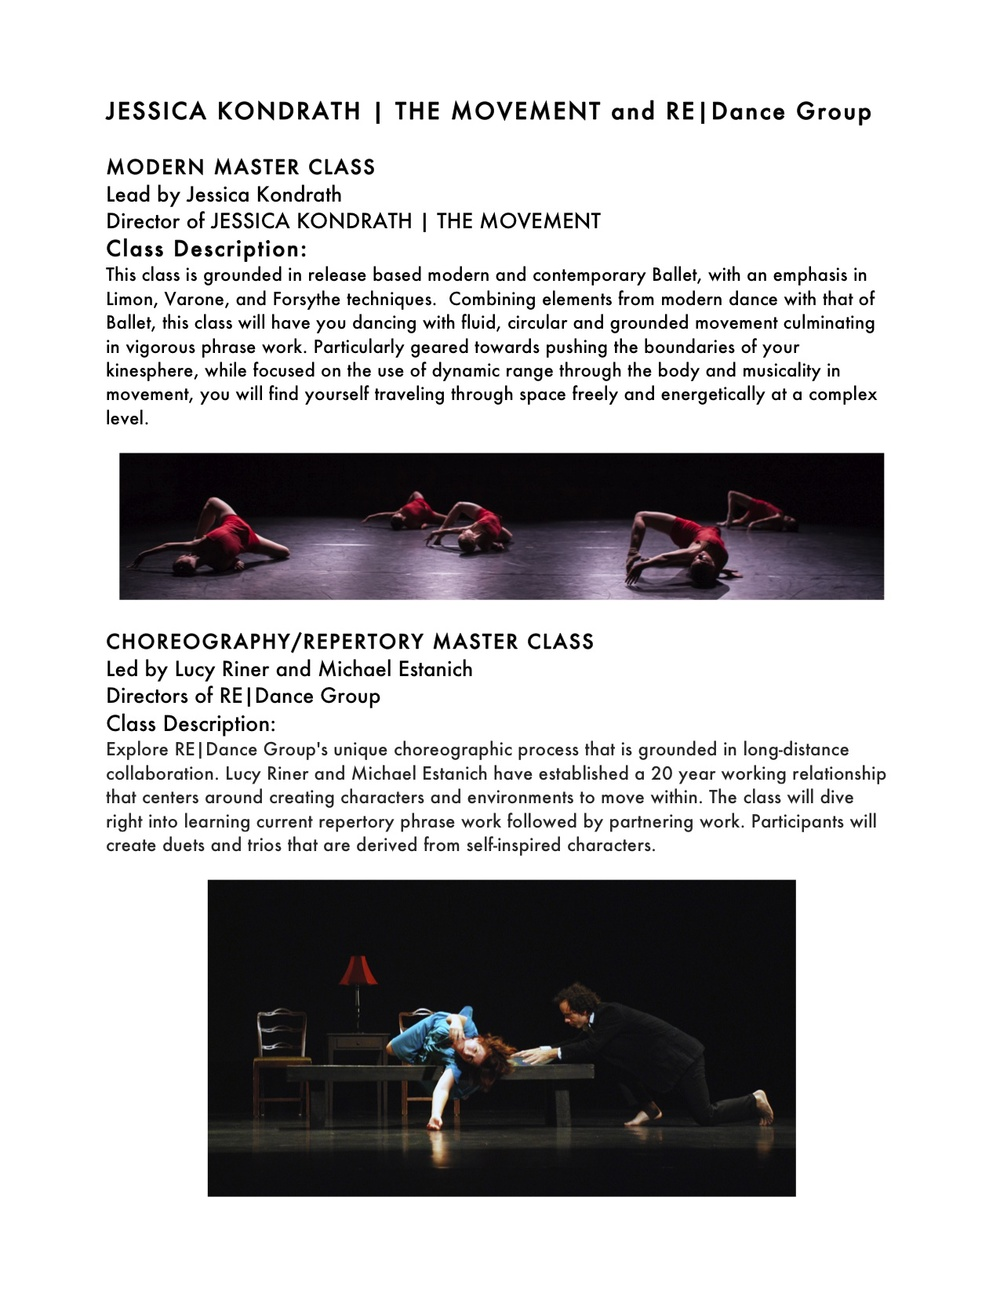 JKTM-RE_Dance Group master class description.jpg